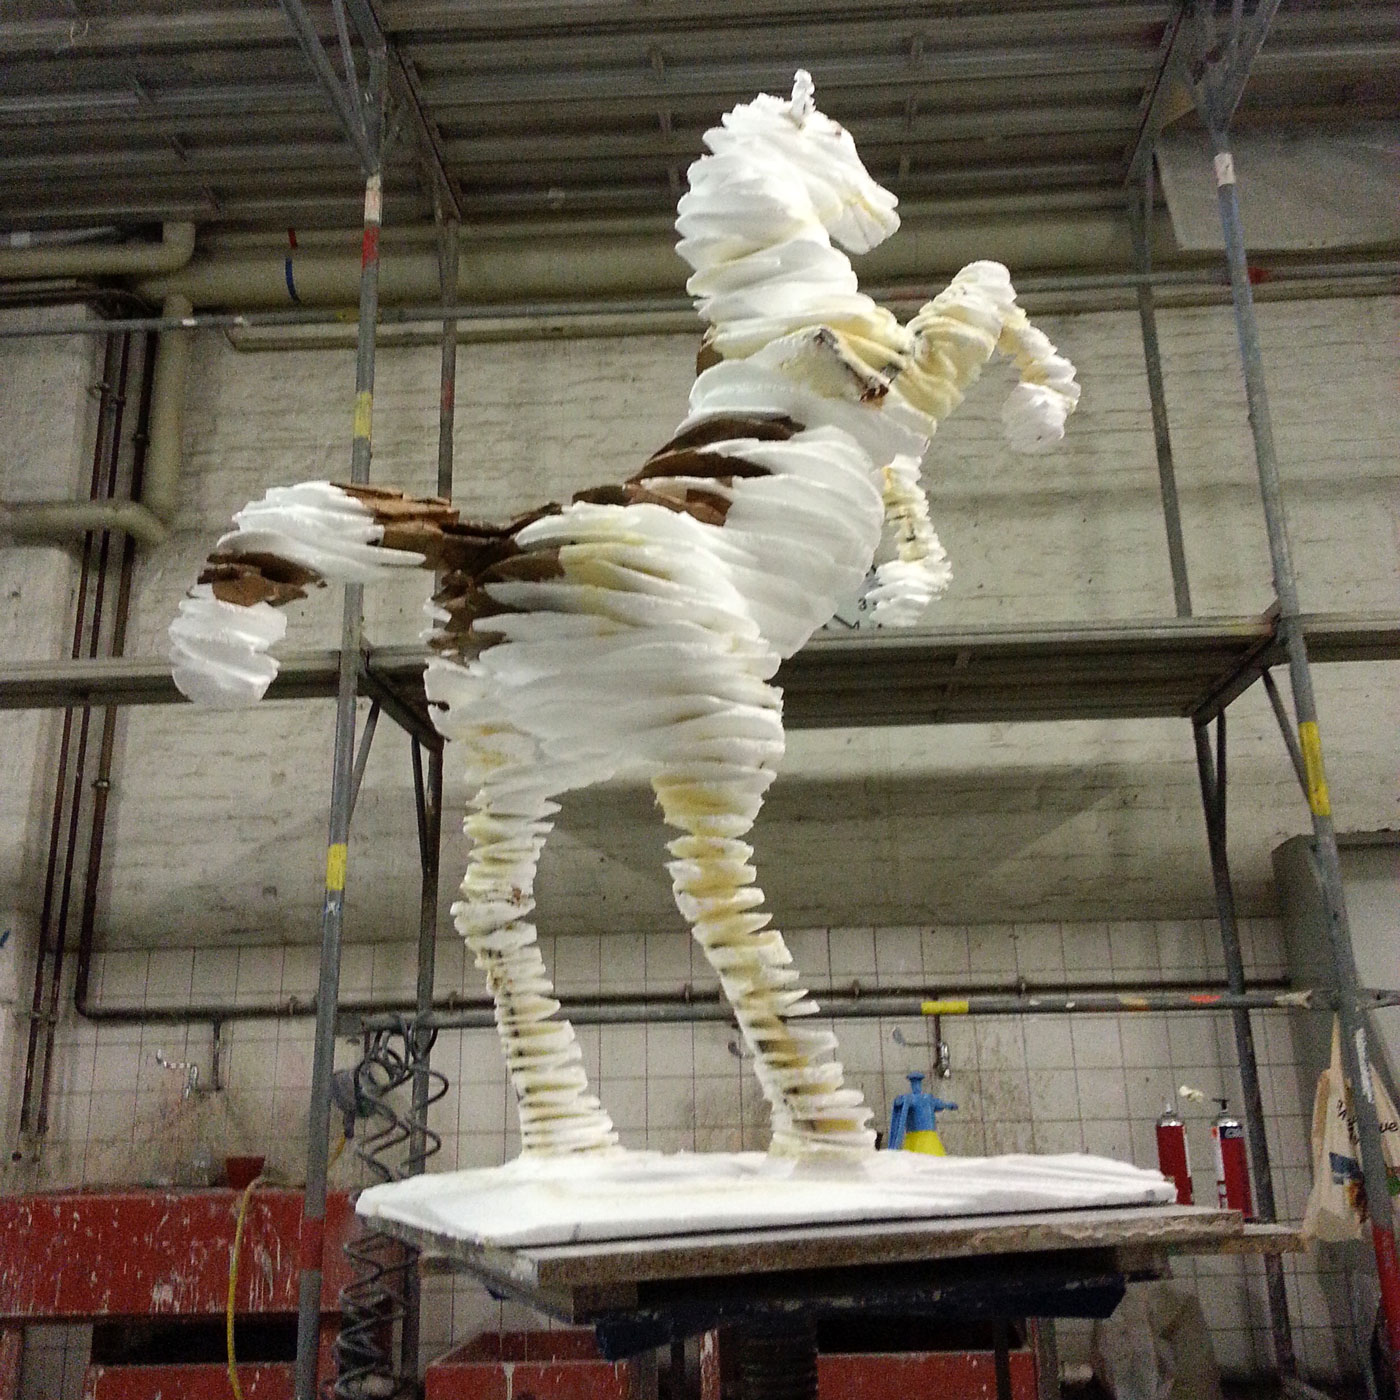 HORSE I, 1. MODEL, © 2013, styrofoam, lined with paper, steel framework, acrylic paint, 490 x 400 x 160 cm incl. base